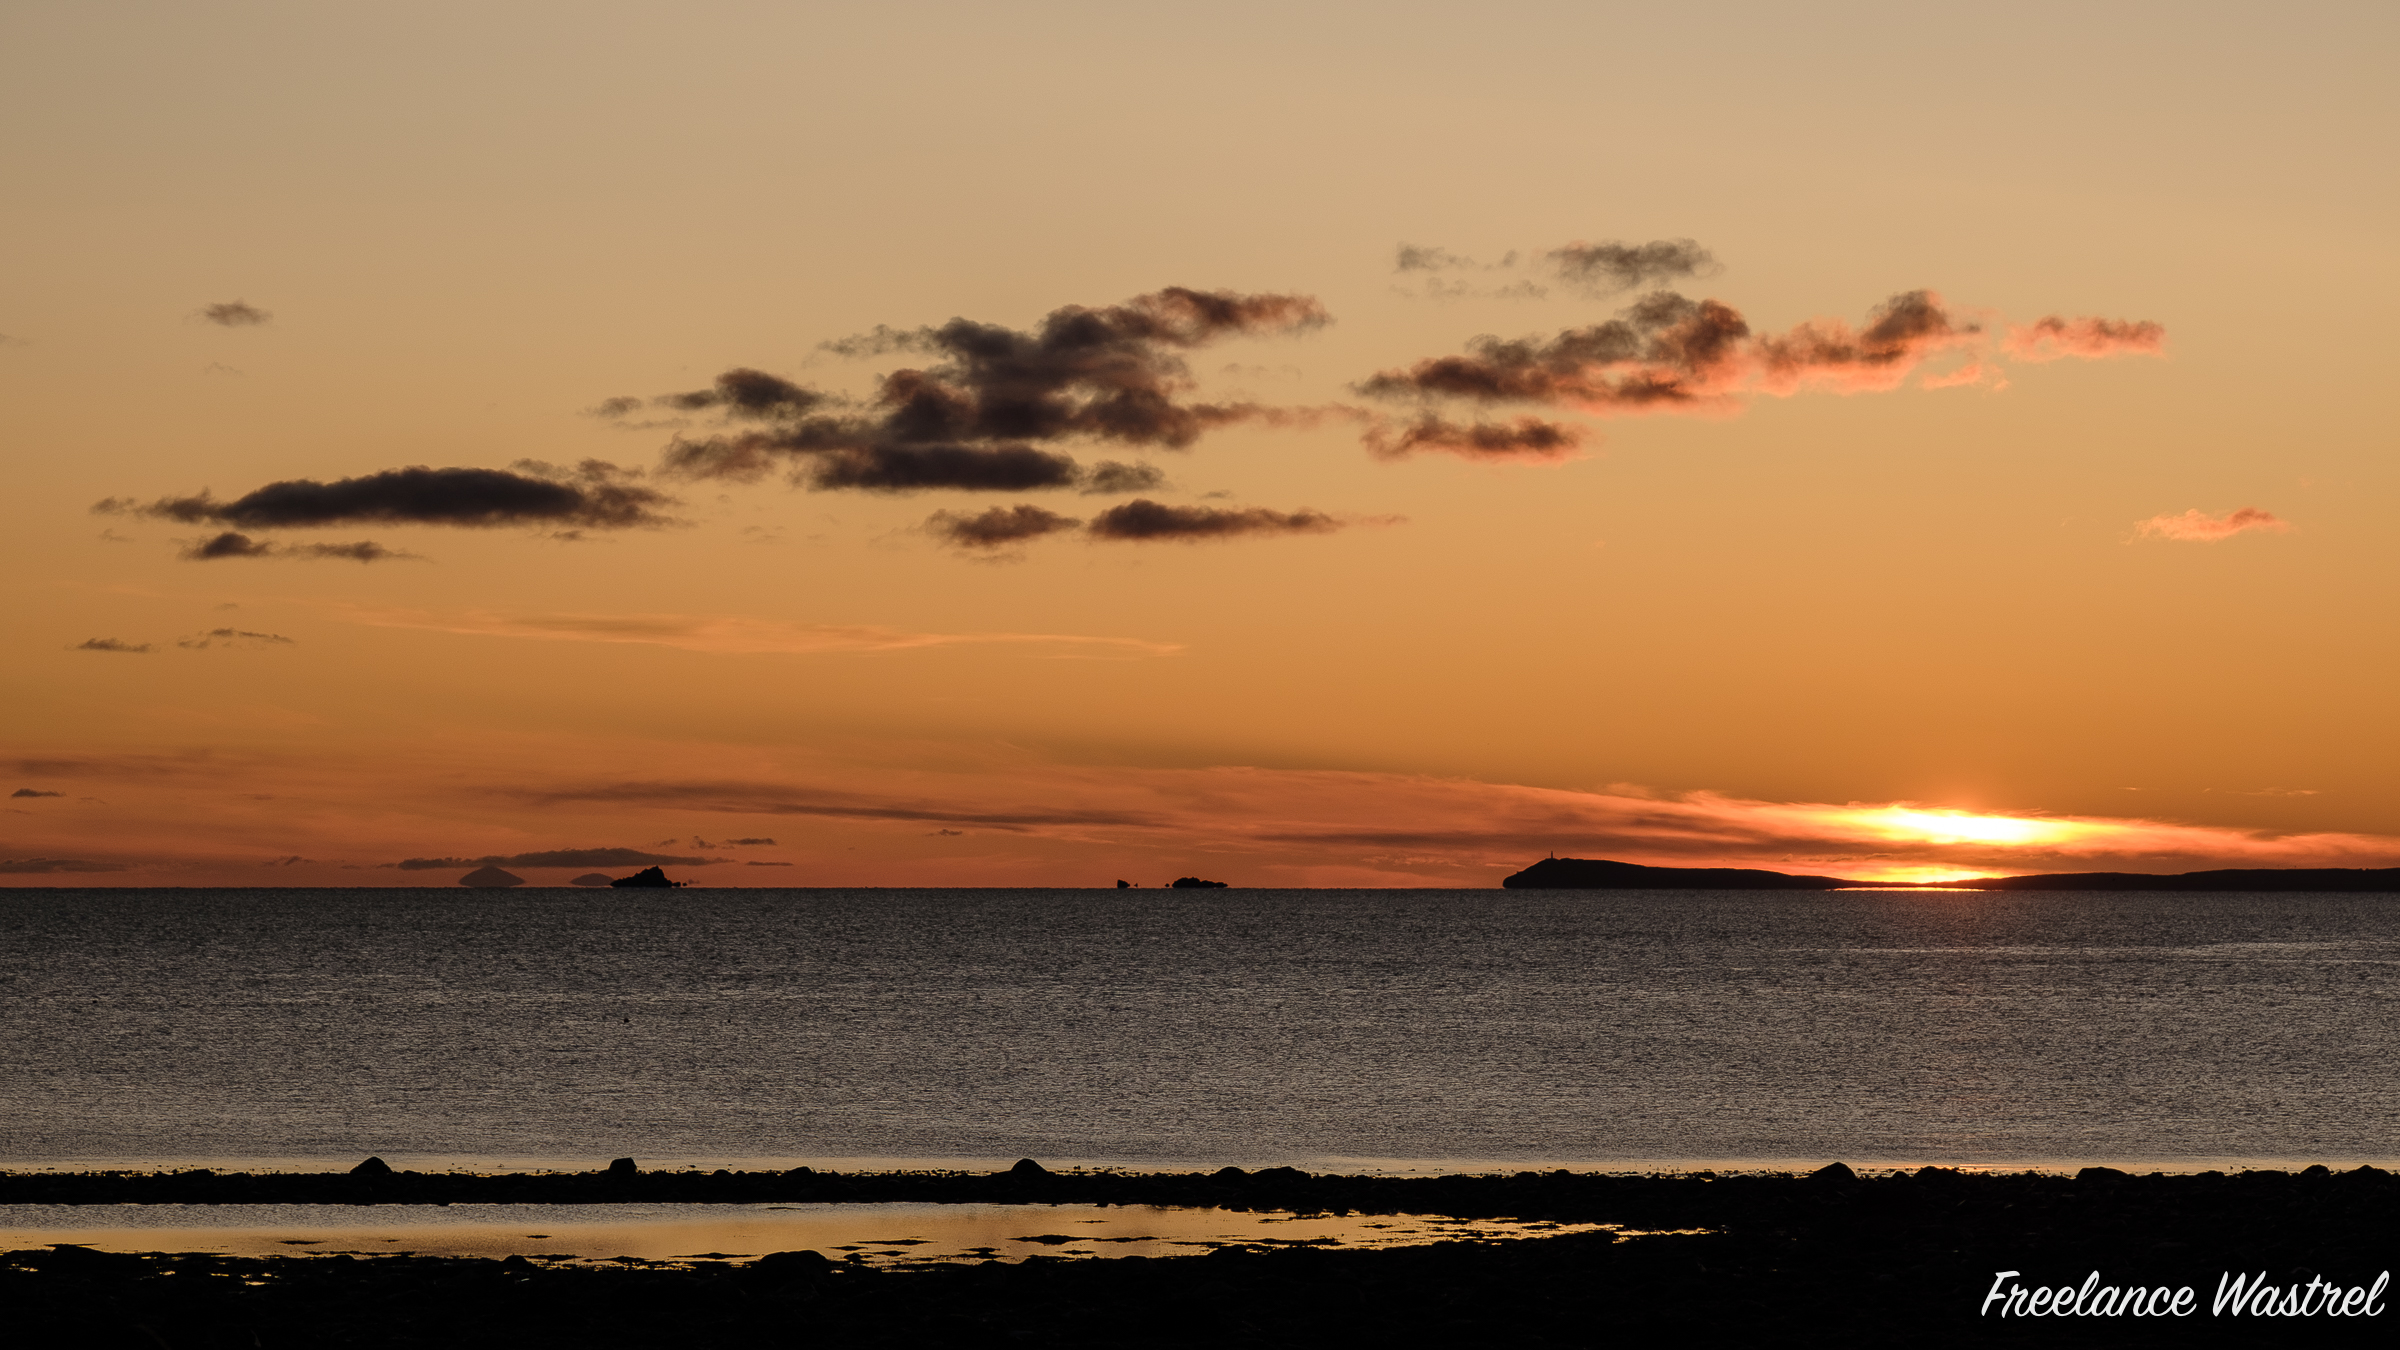 Sunset, Mull of Galloway, October 2019